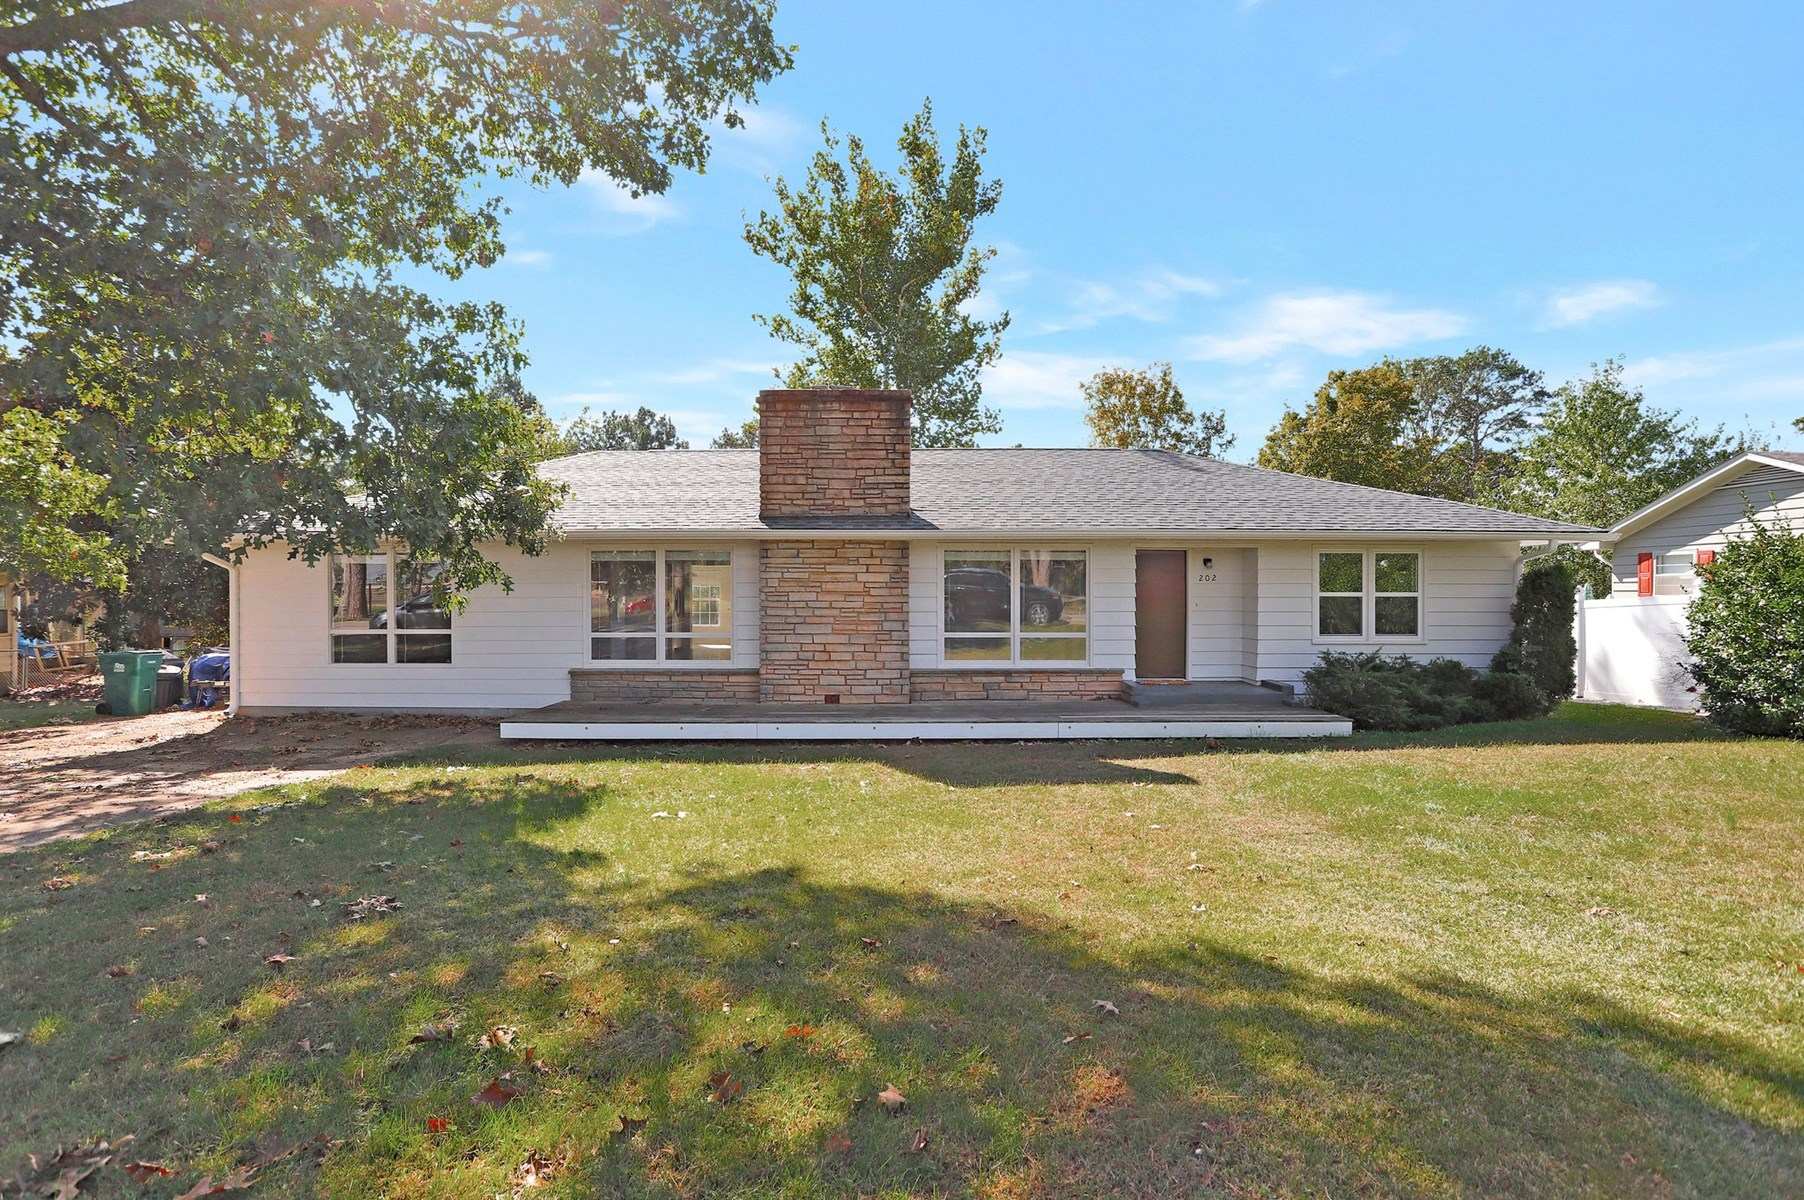 Home for Sale Close to Park & School in Willow Springs, MO